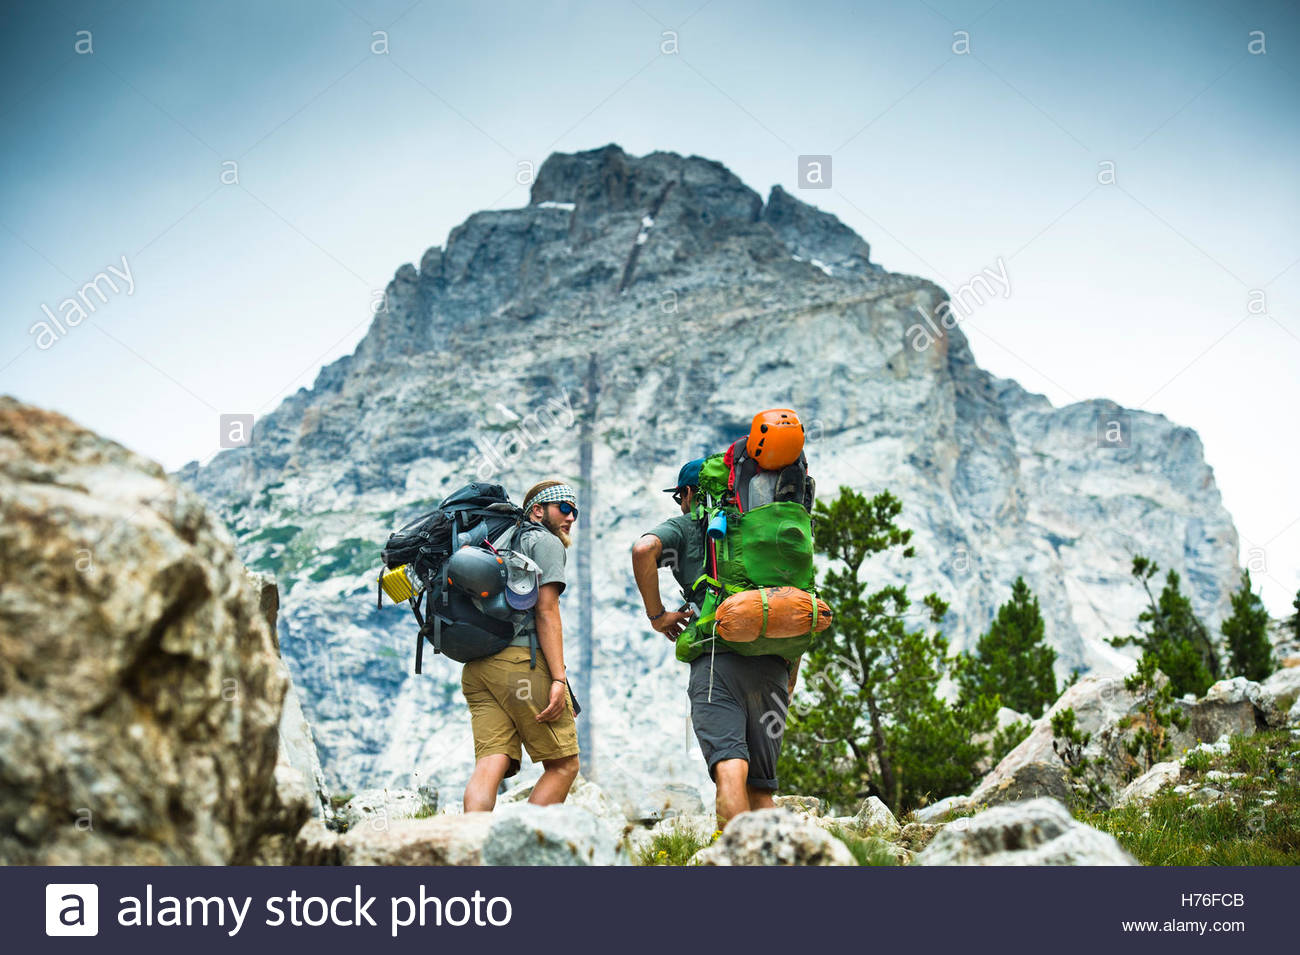 Two hikers stop to take in the mountain views. - Stock Image